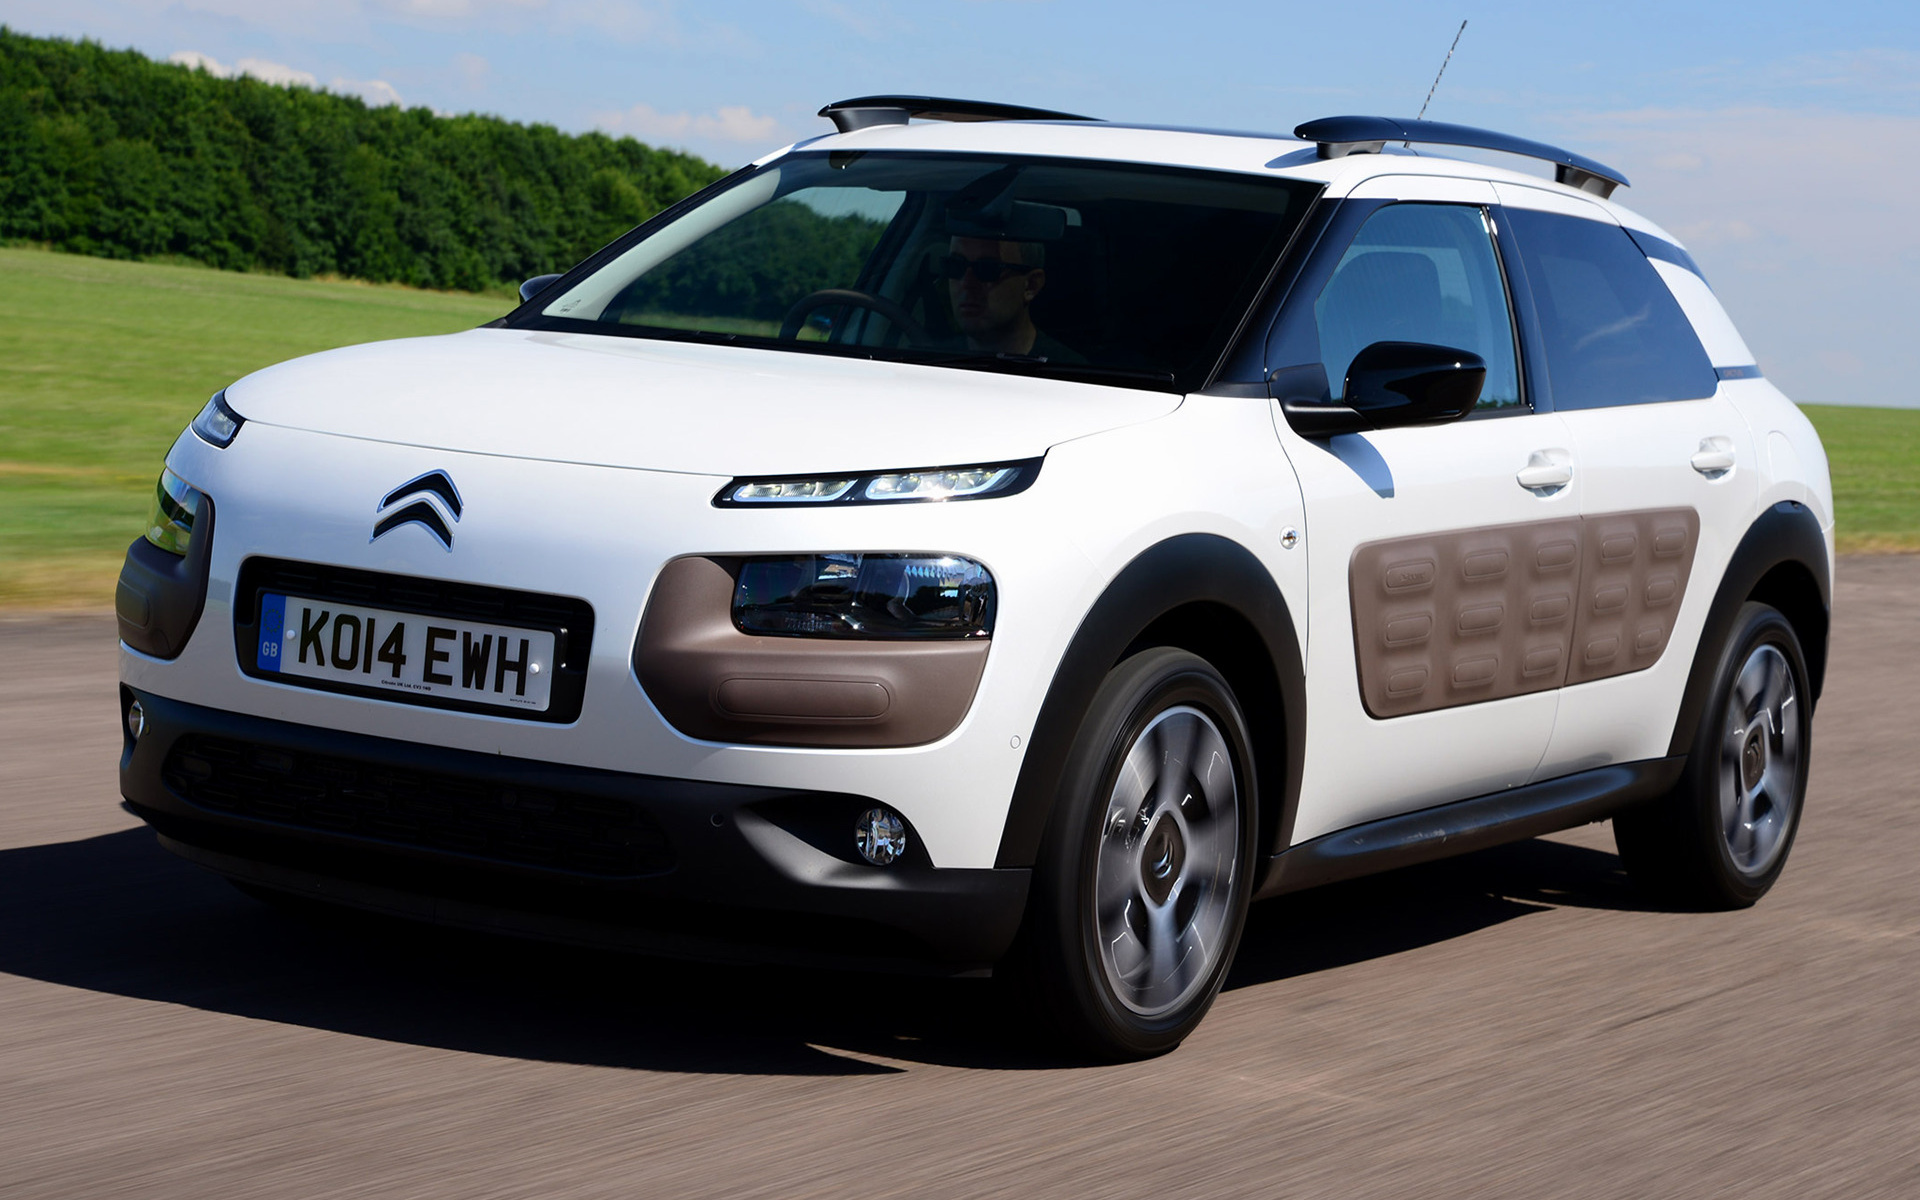 2014 Citroen C4 Cactus Uk Wallpapers And Hd Images